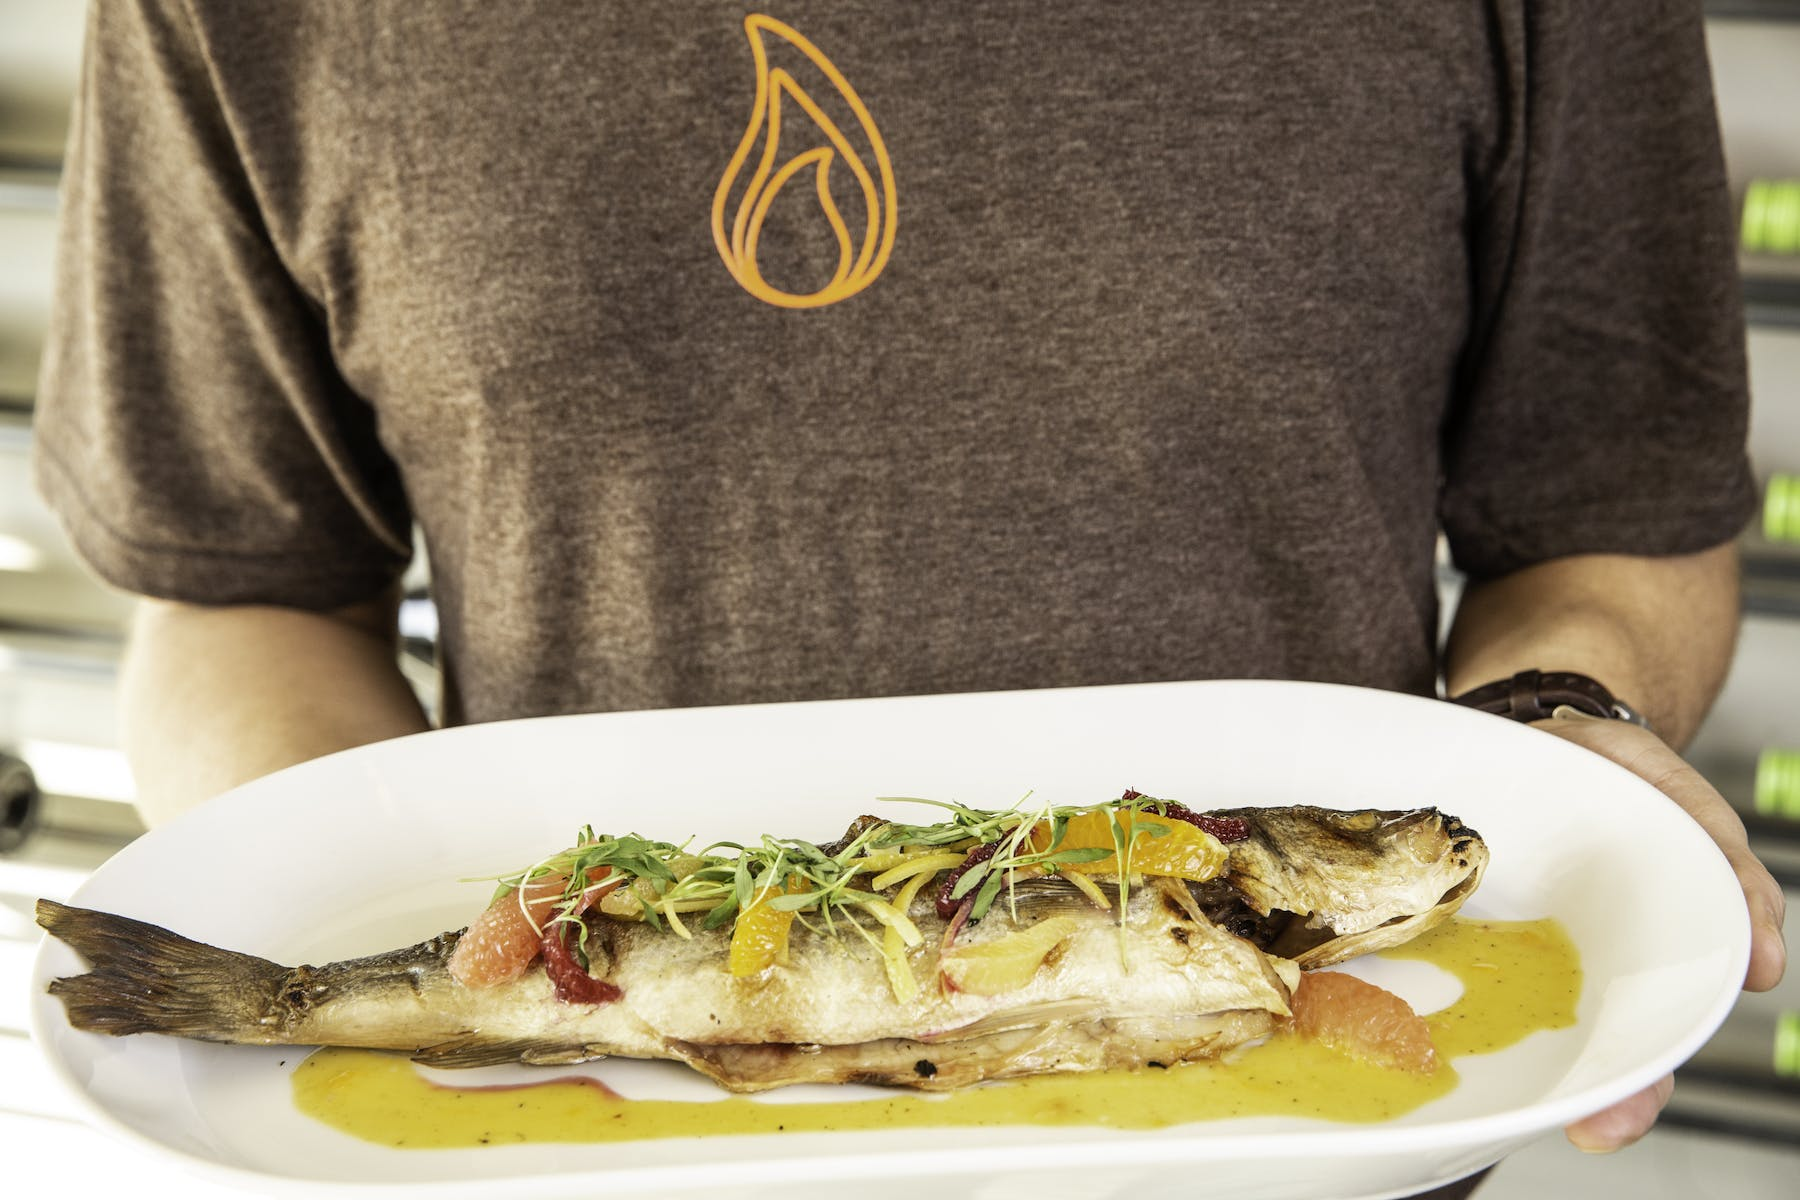 a man holding  a whole fish on white plate with oil drizzled over